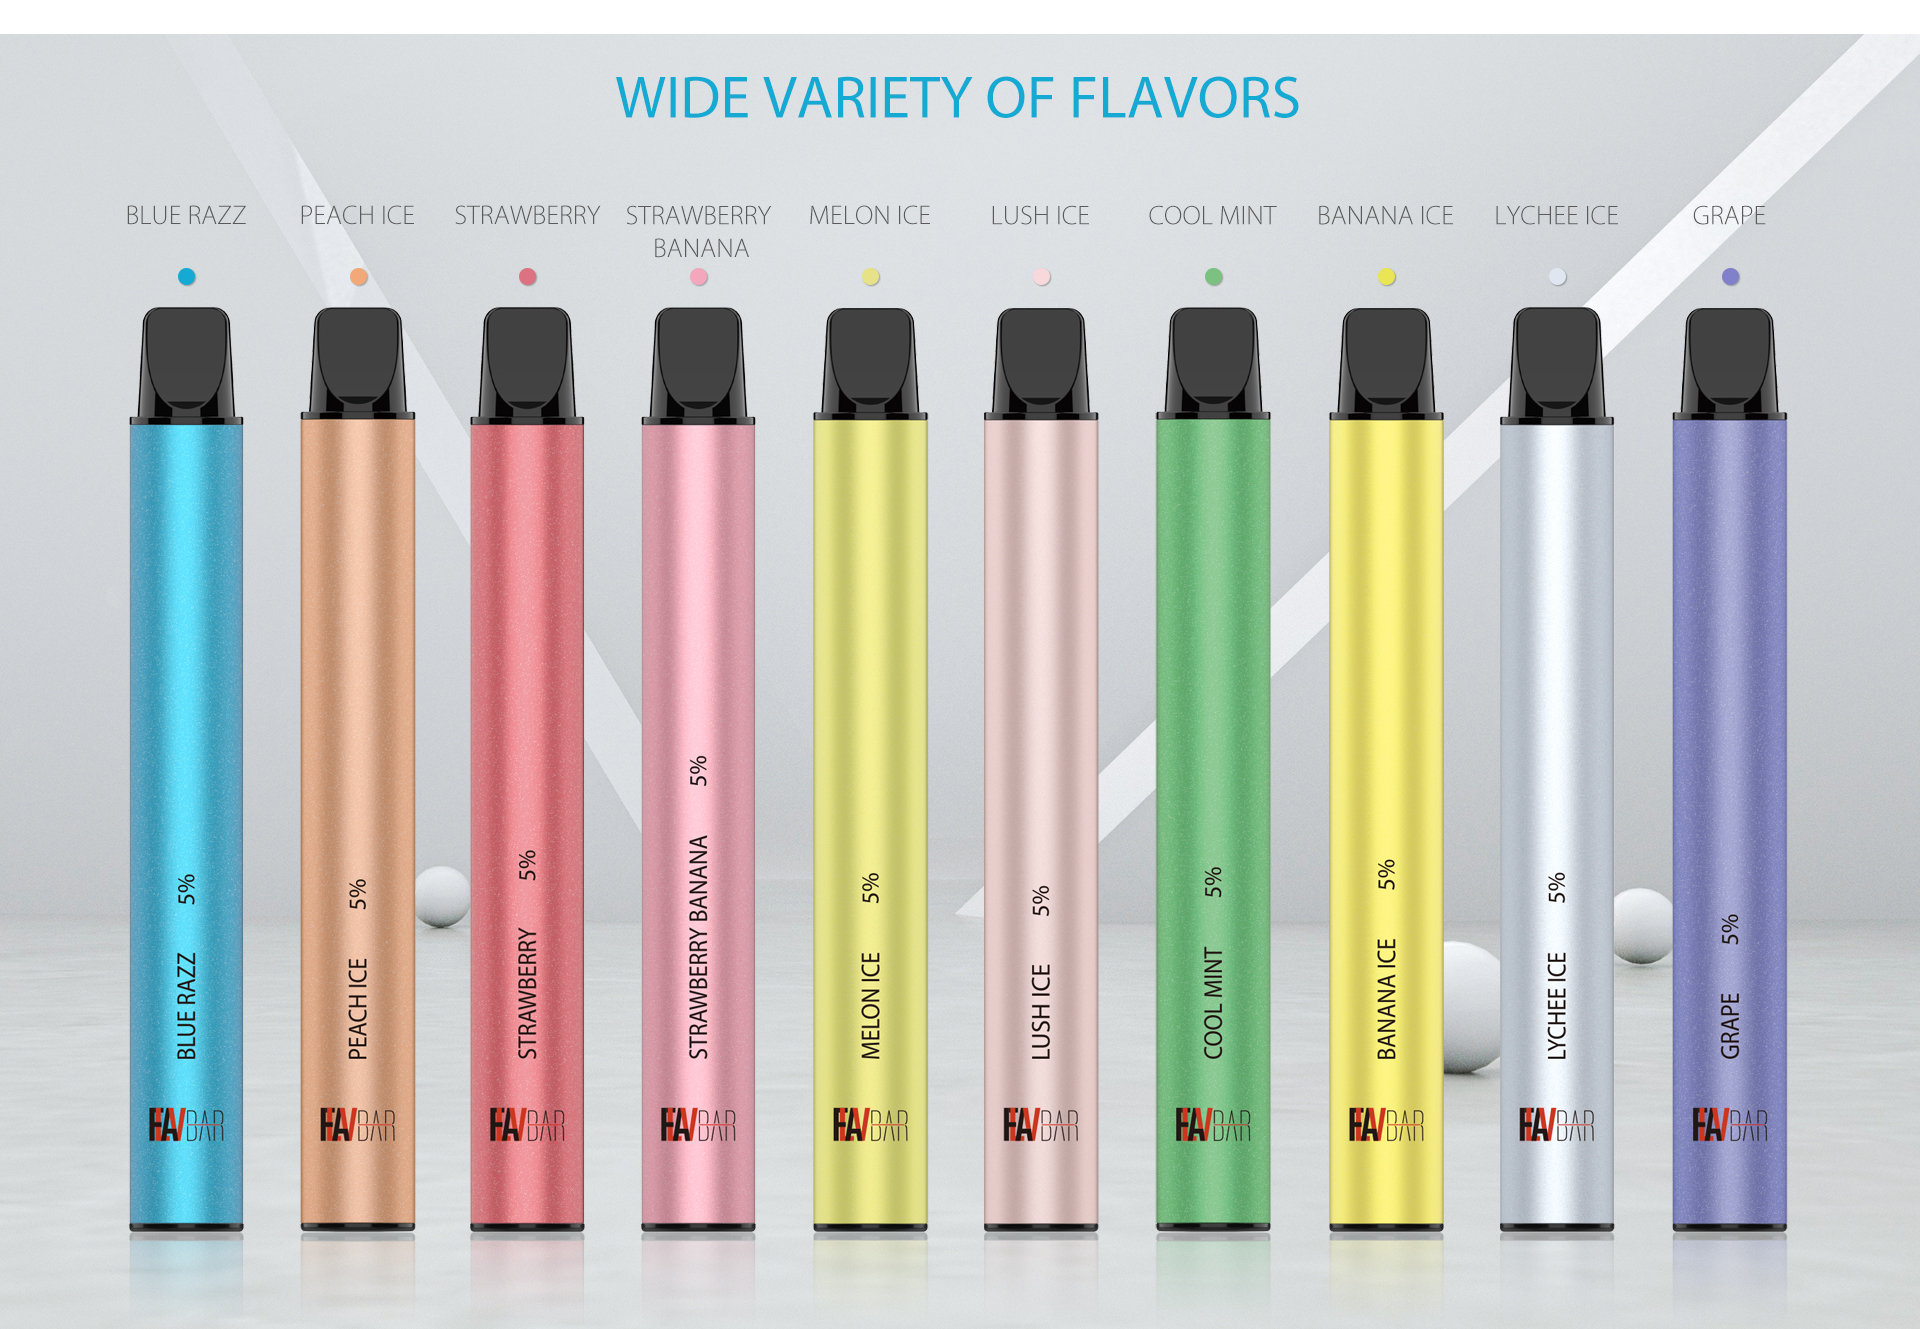 FLAVBAR v2 disposable device has ten awesome flavors.